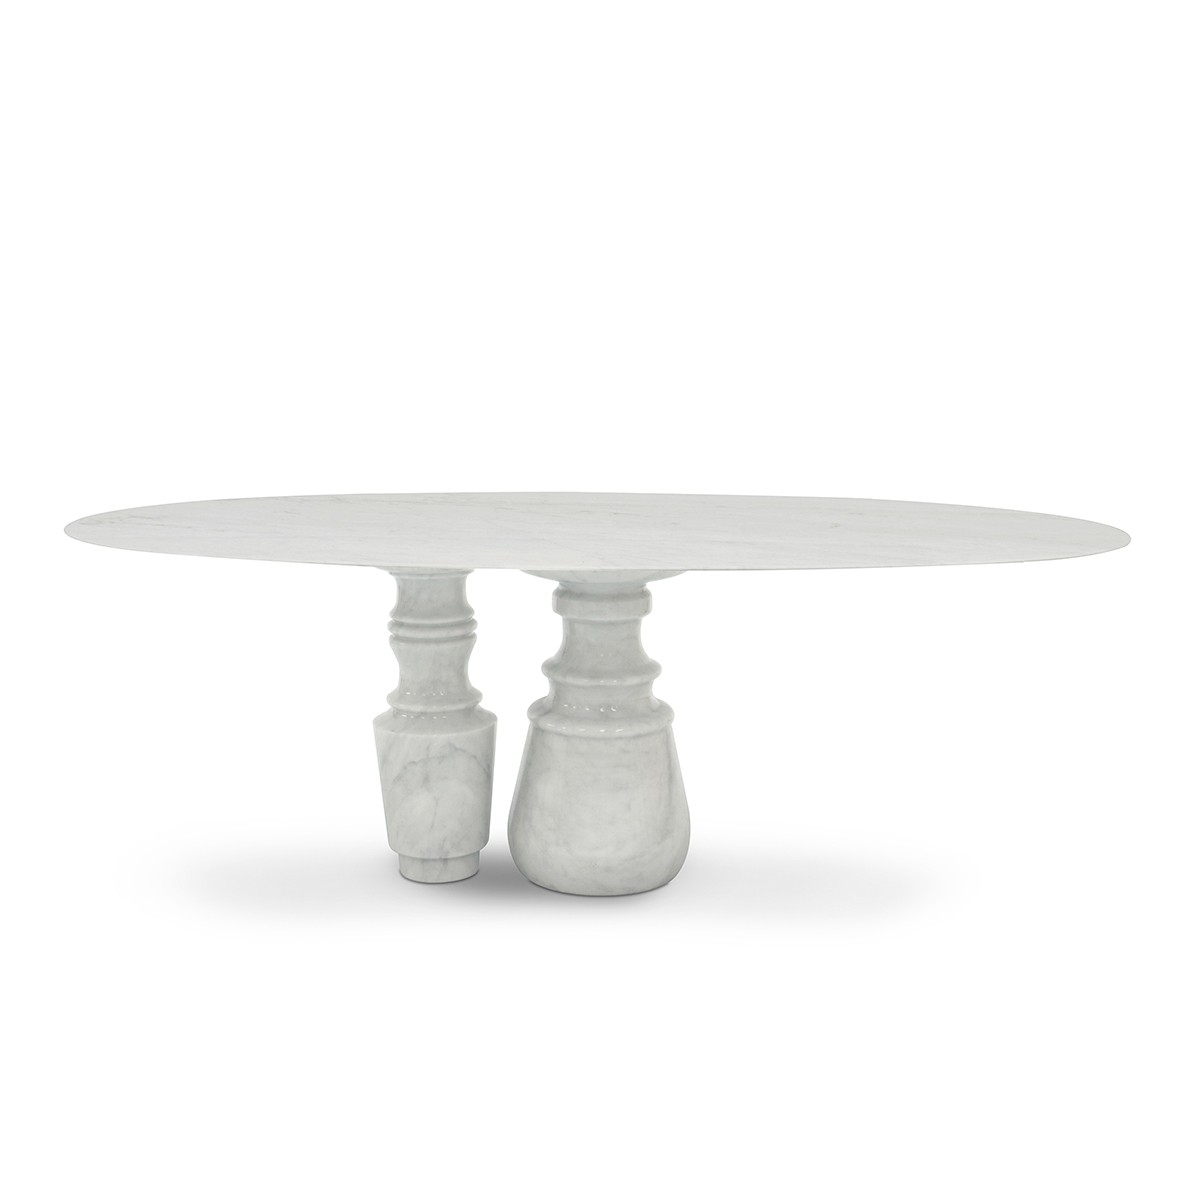 Trendy Dining Tables For 2019 (Part III) trendy dining tables Trendy Dining Tables For 2019 (Part III) pietra